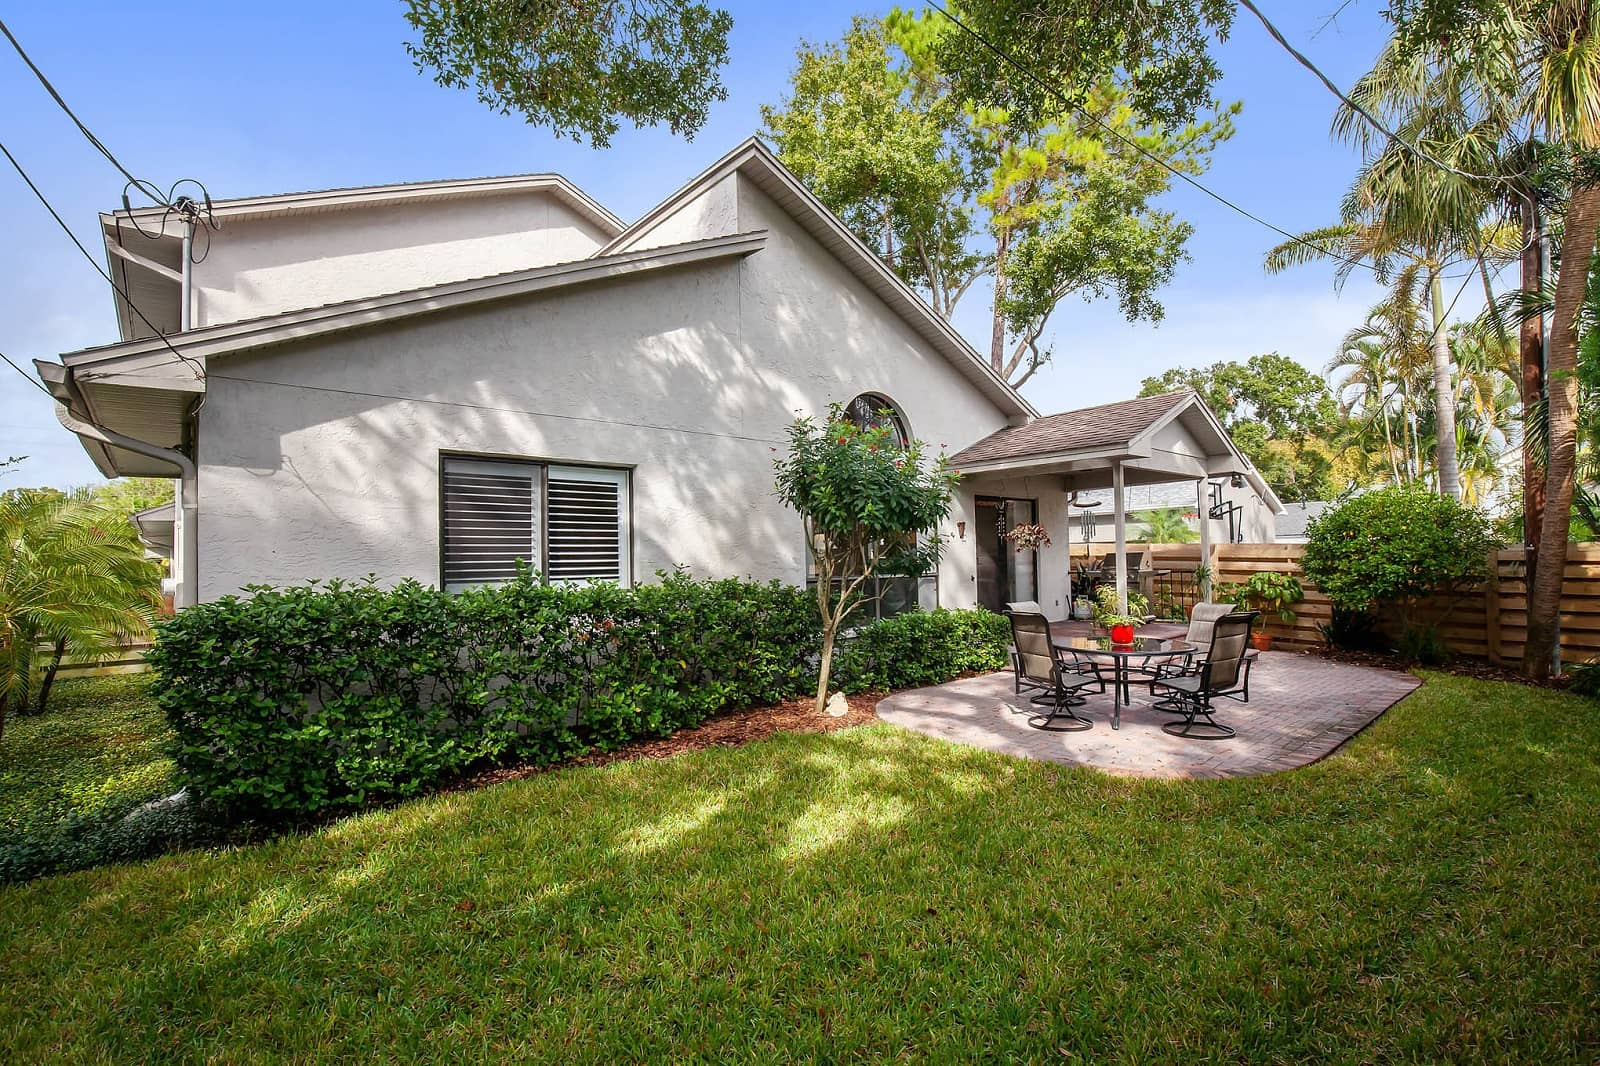 Real Estate Photography in Tampa - FL - USA - Front View